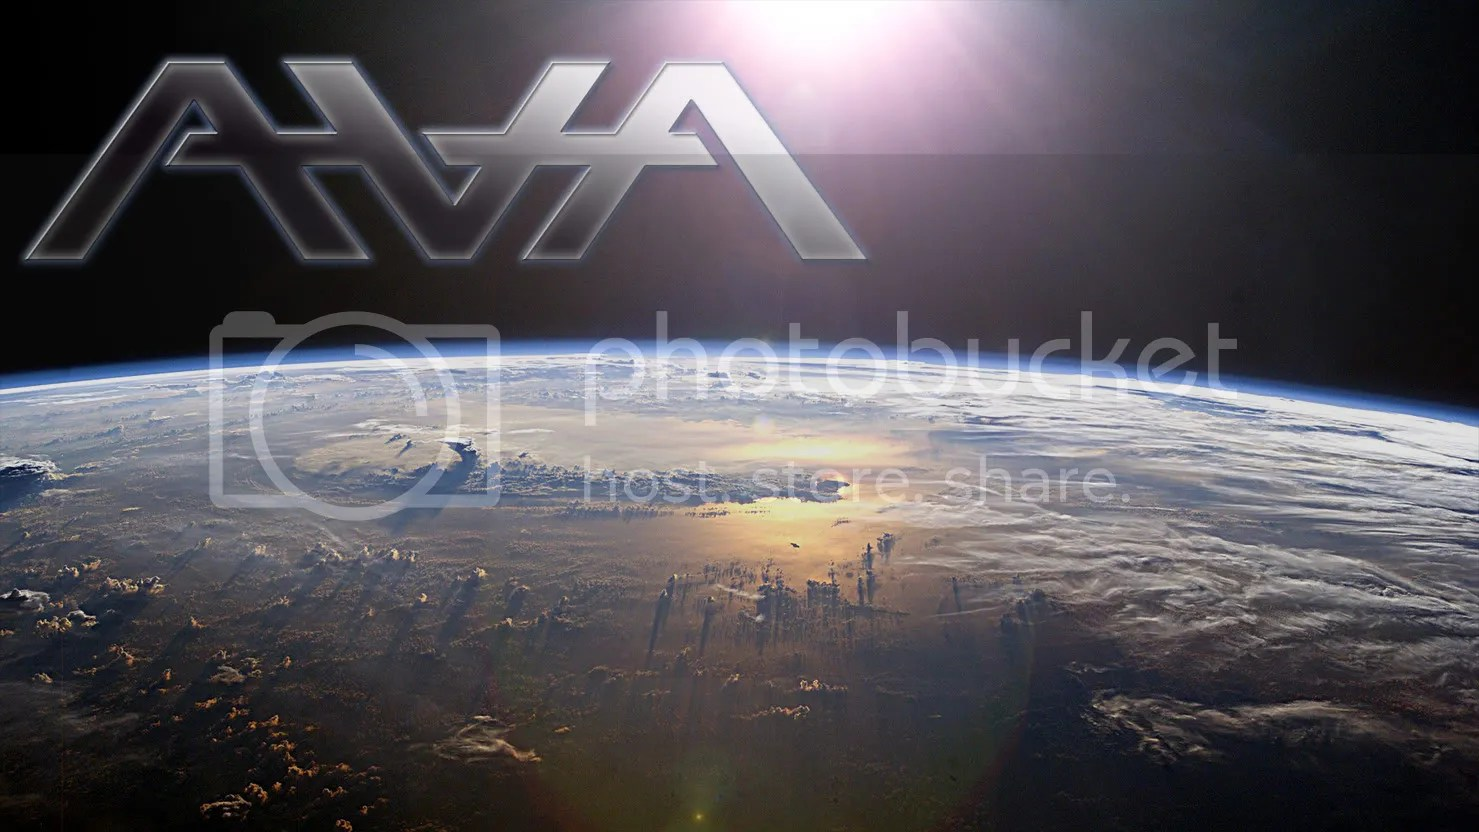 AVA.jpg Angels & Airwaves Wallpaper